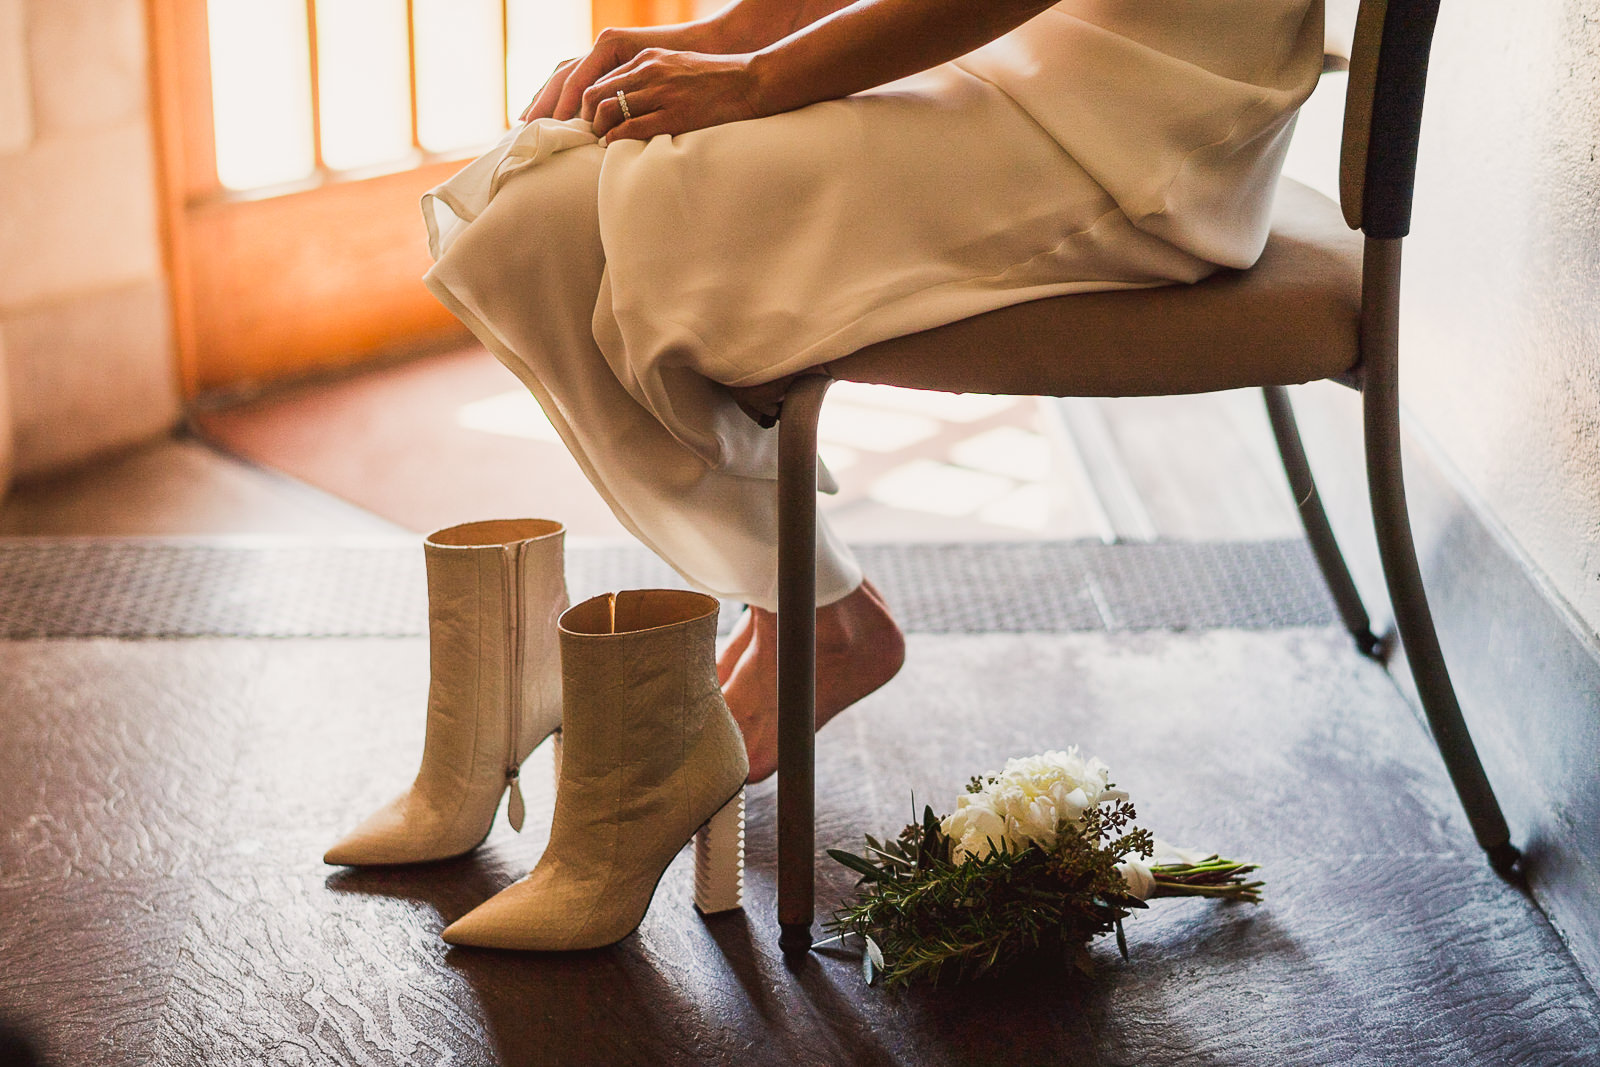 12 bride putting on wedding shoes - Rebecca + Doha // Wedding Photos at Room 1520 Chicago